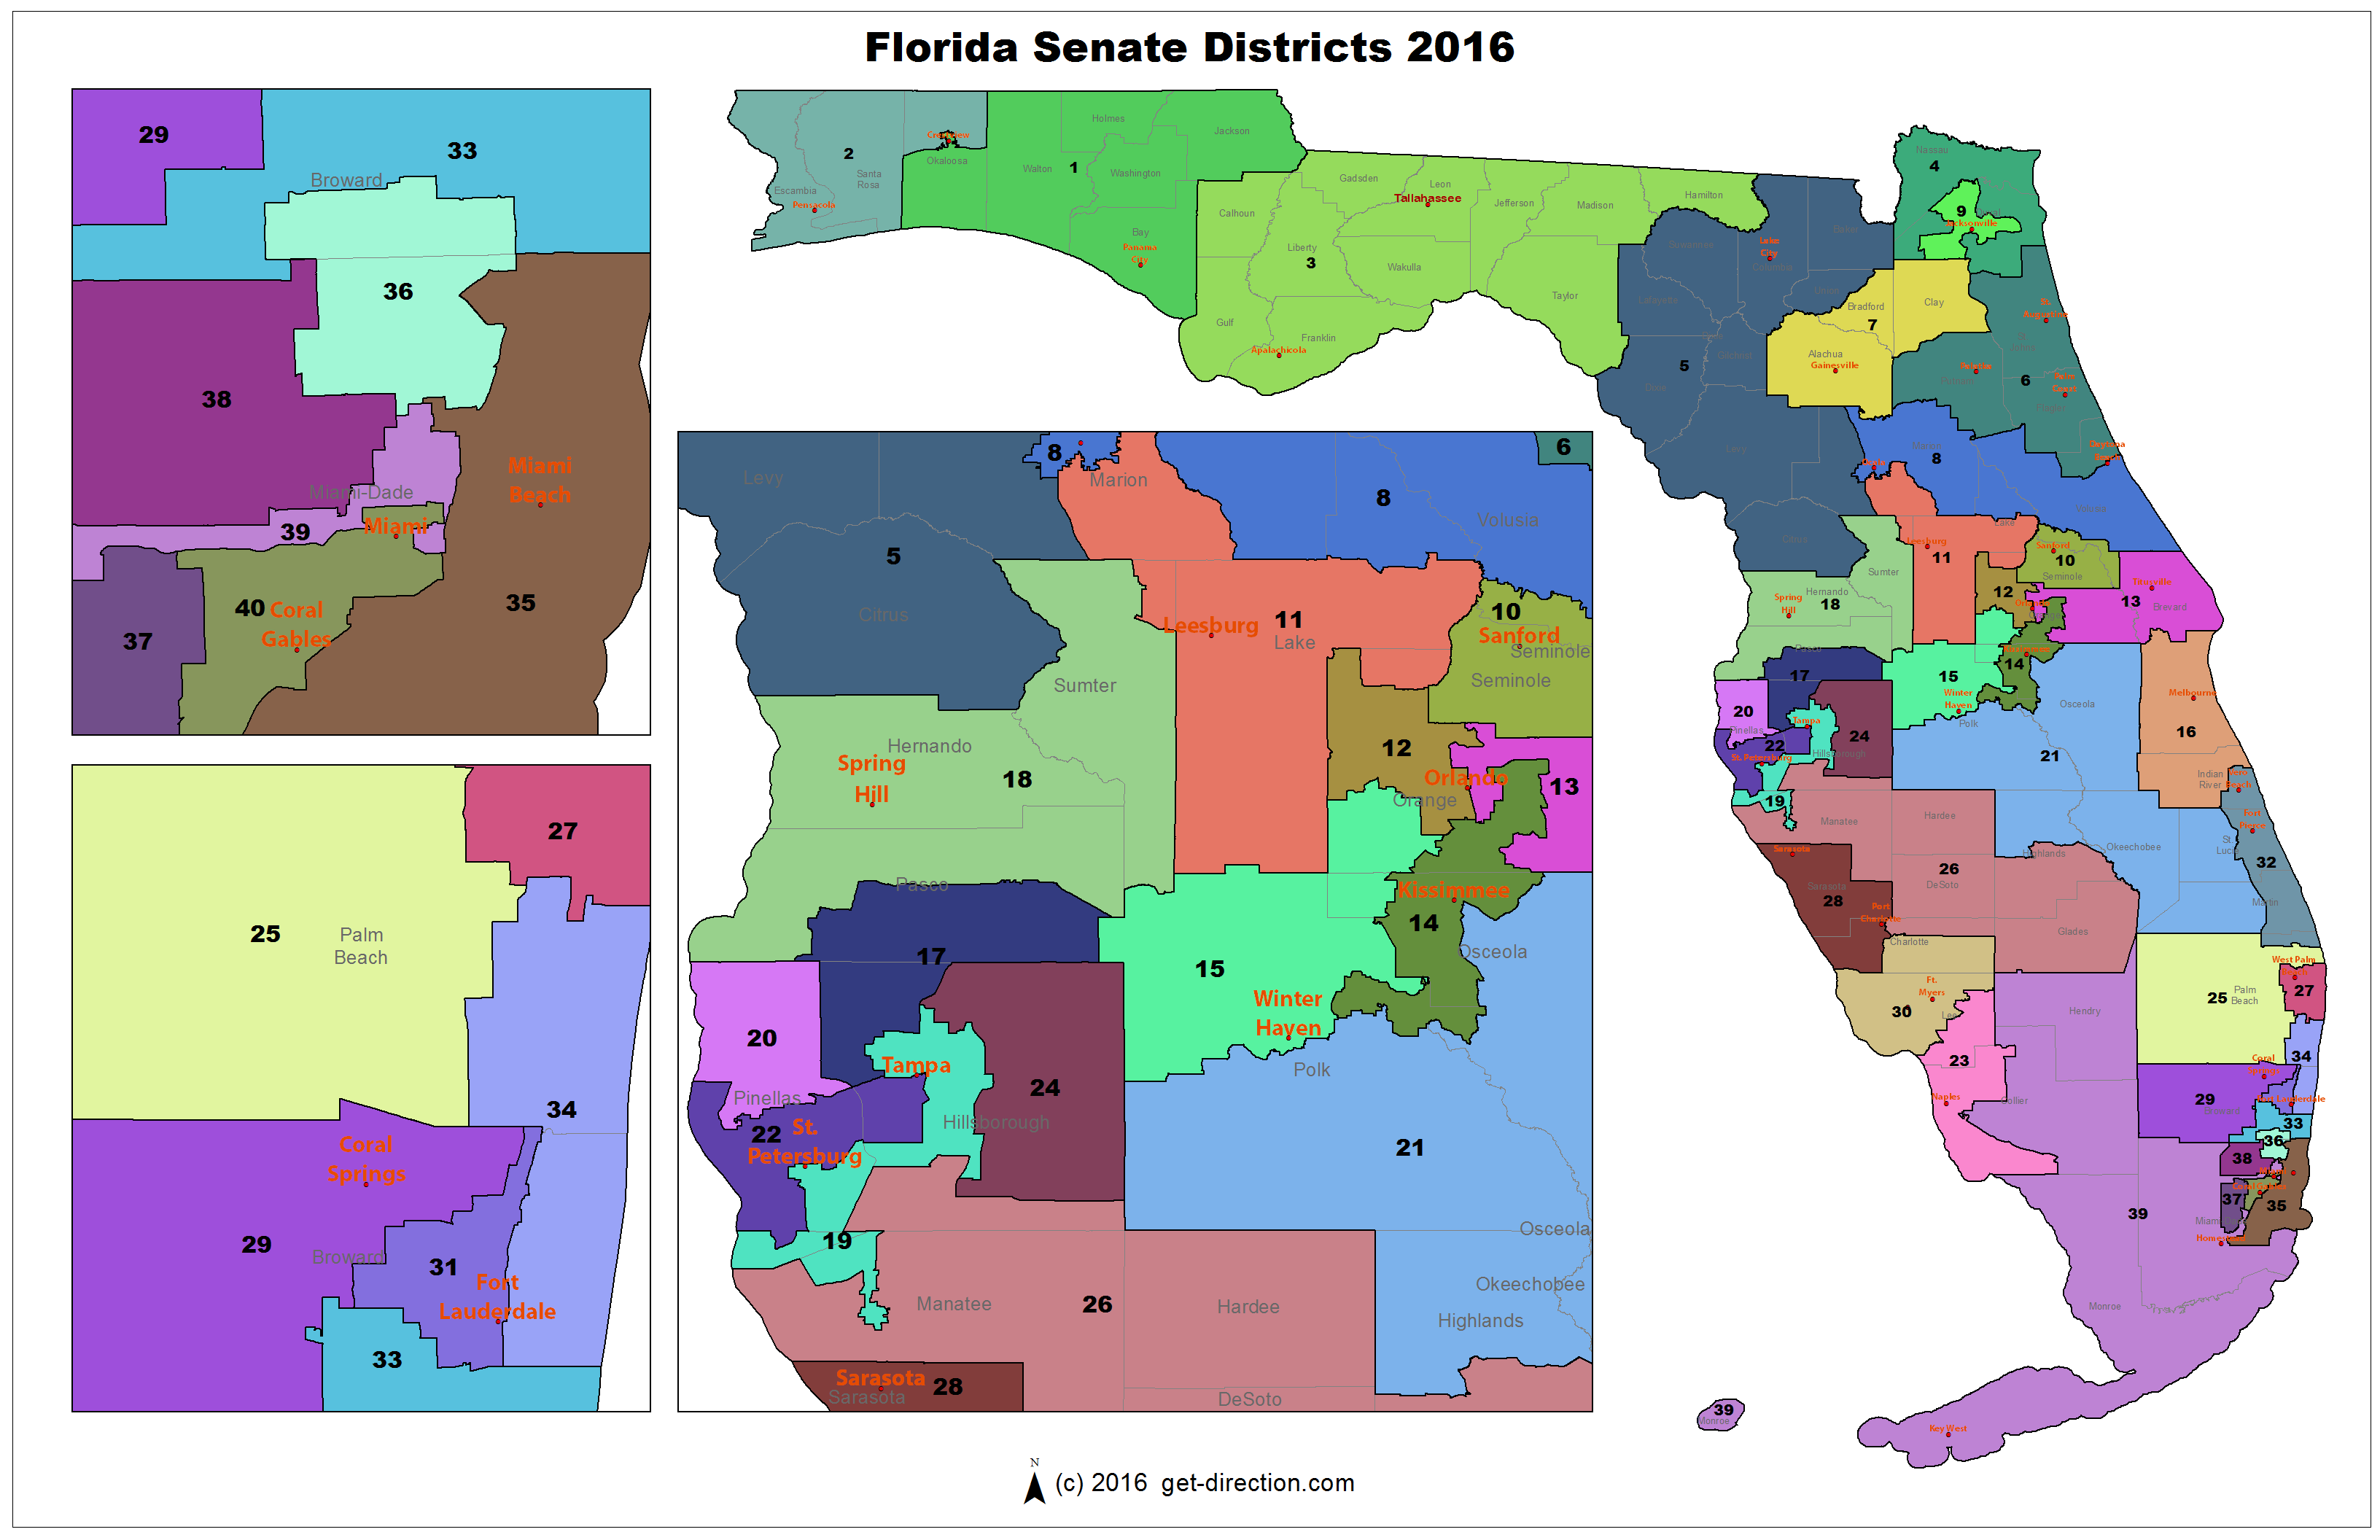 florida-senate-districts-2016.png